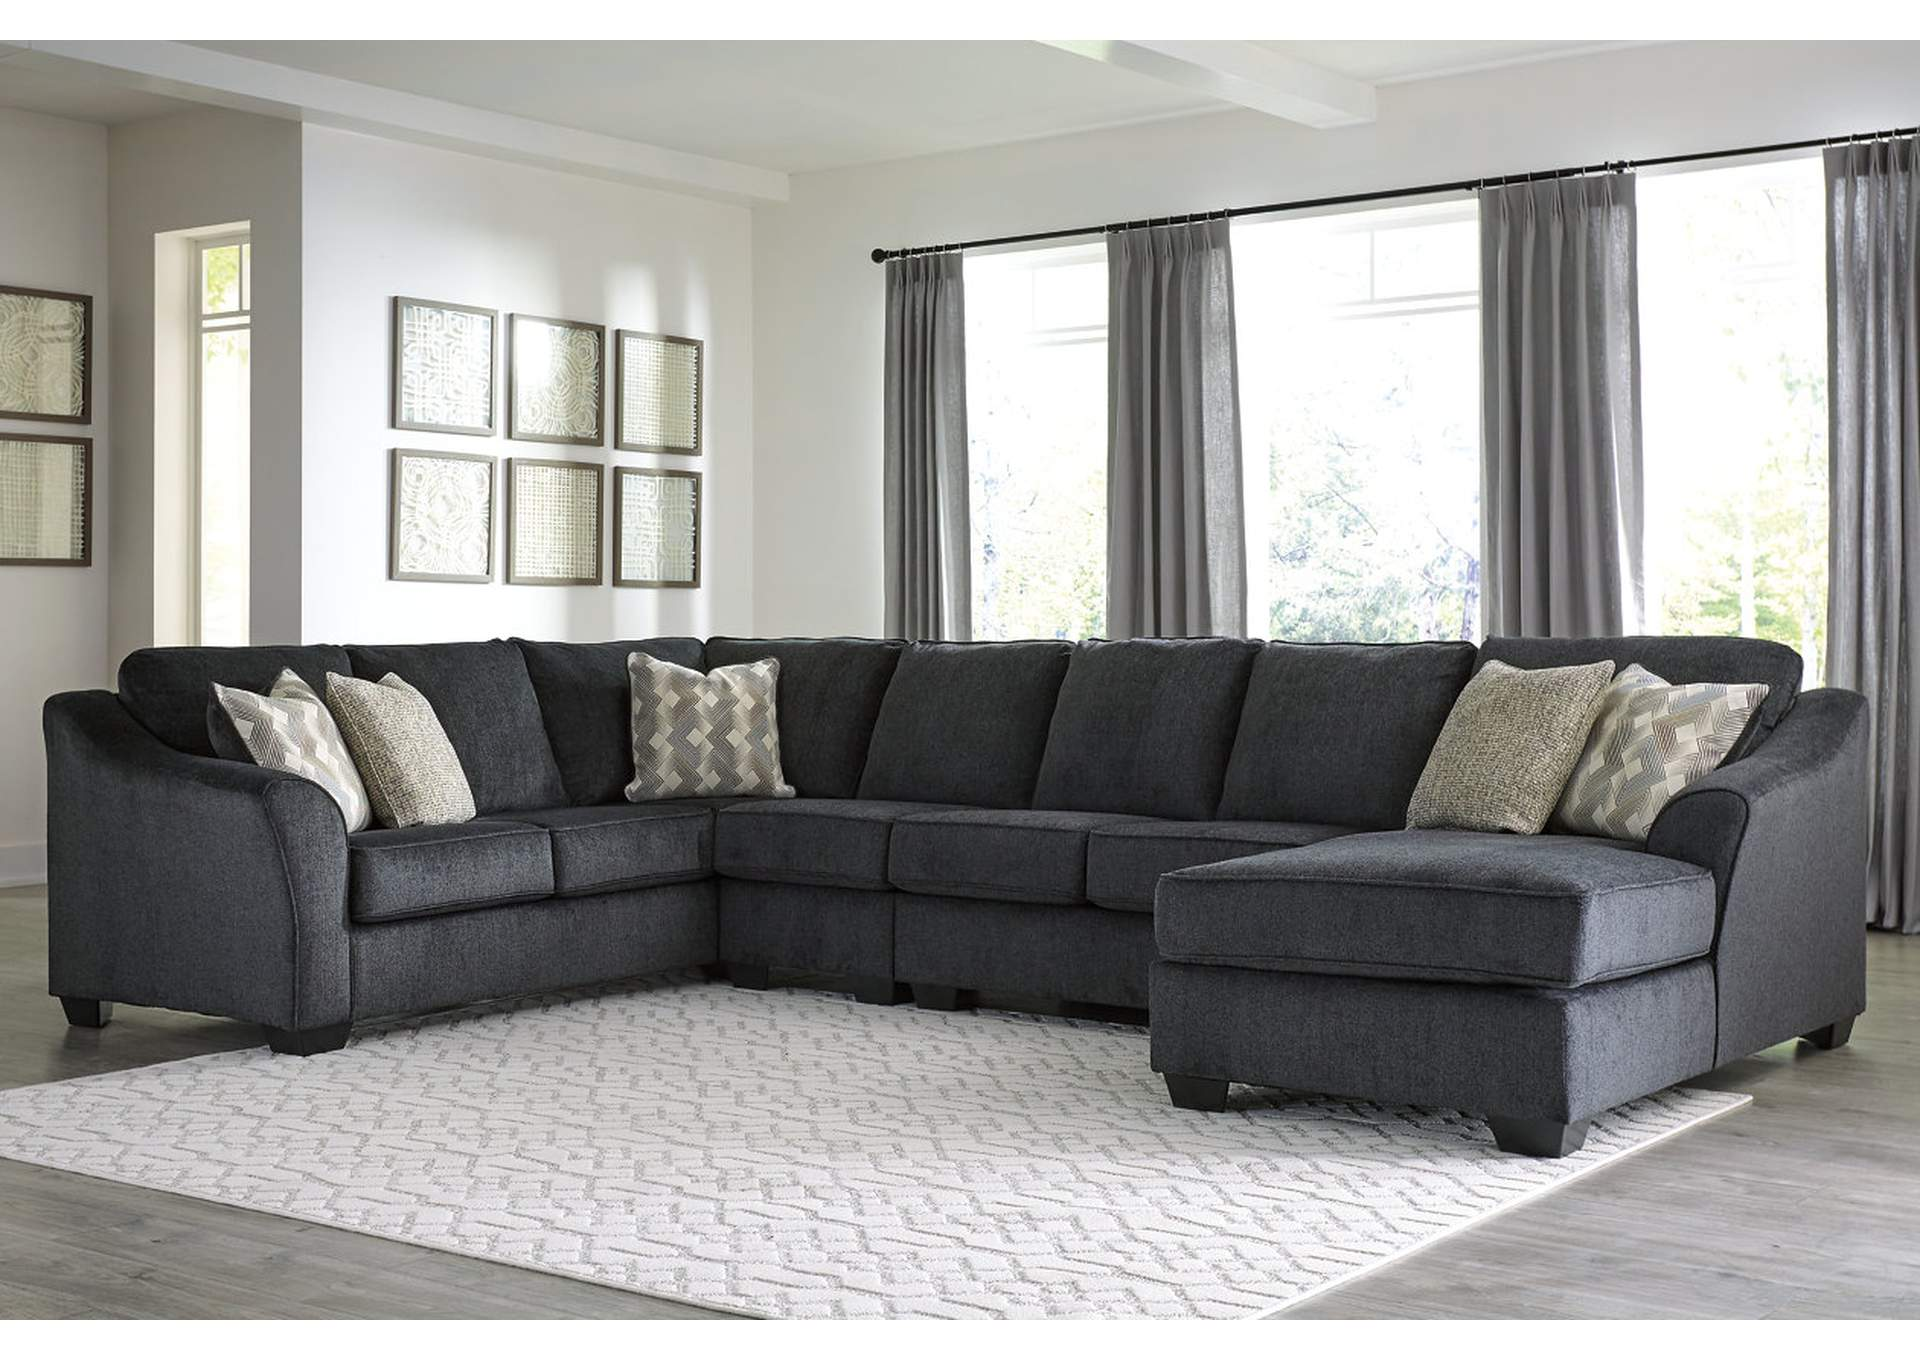 Eltmann Slate RAF Chaise Extended Sectional,Signature Design By Ashley